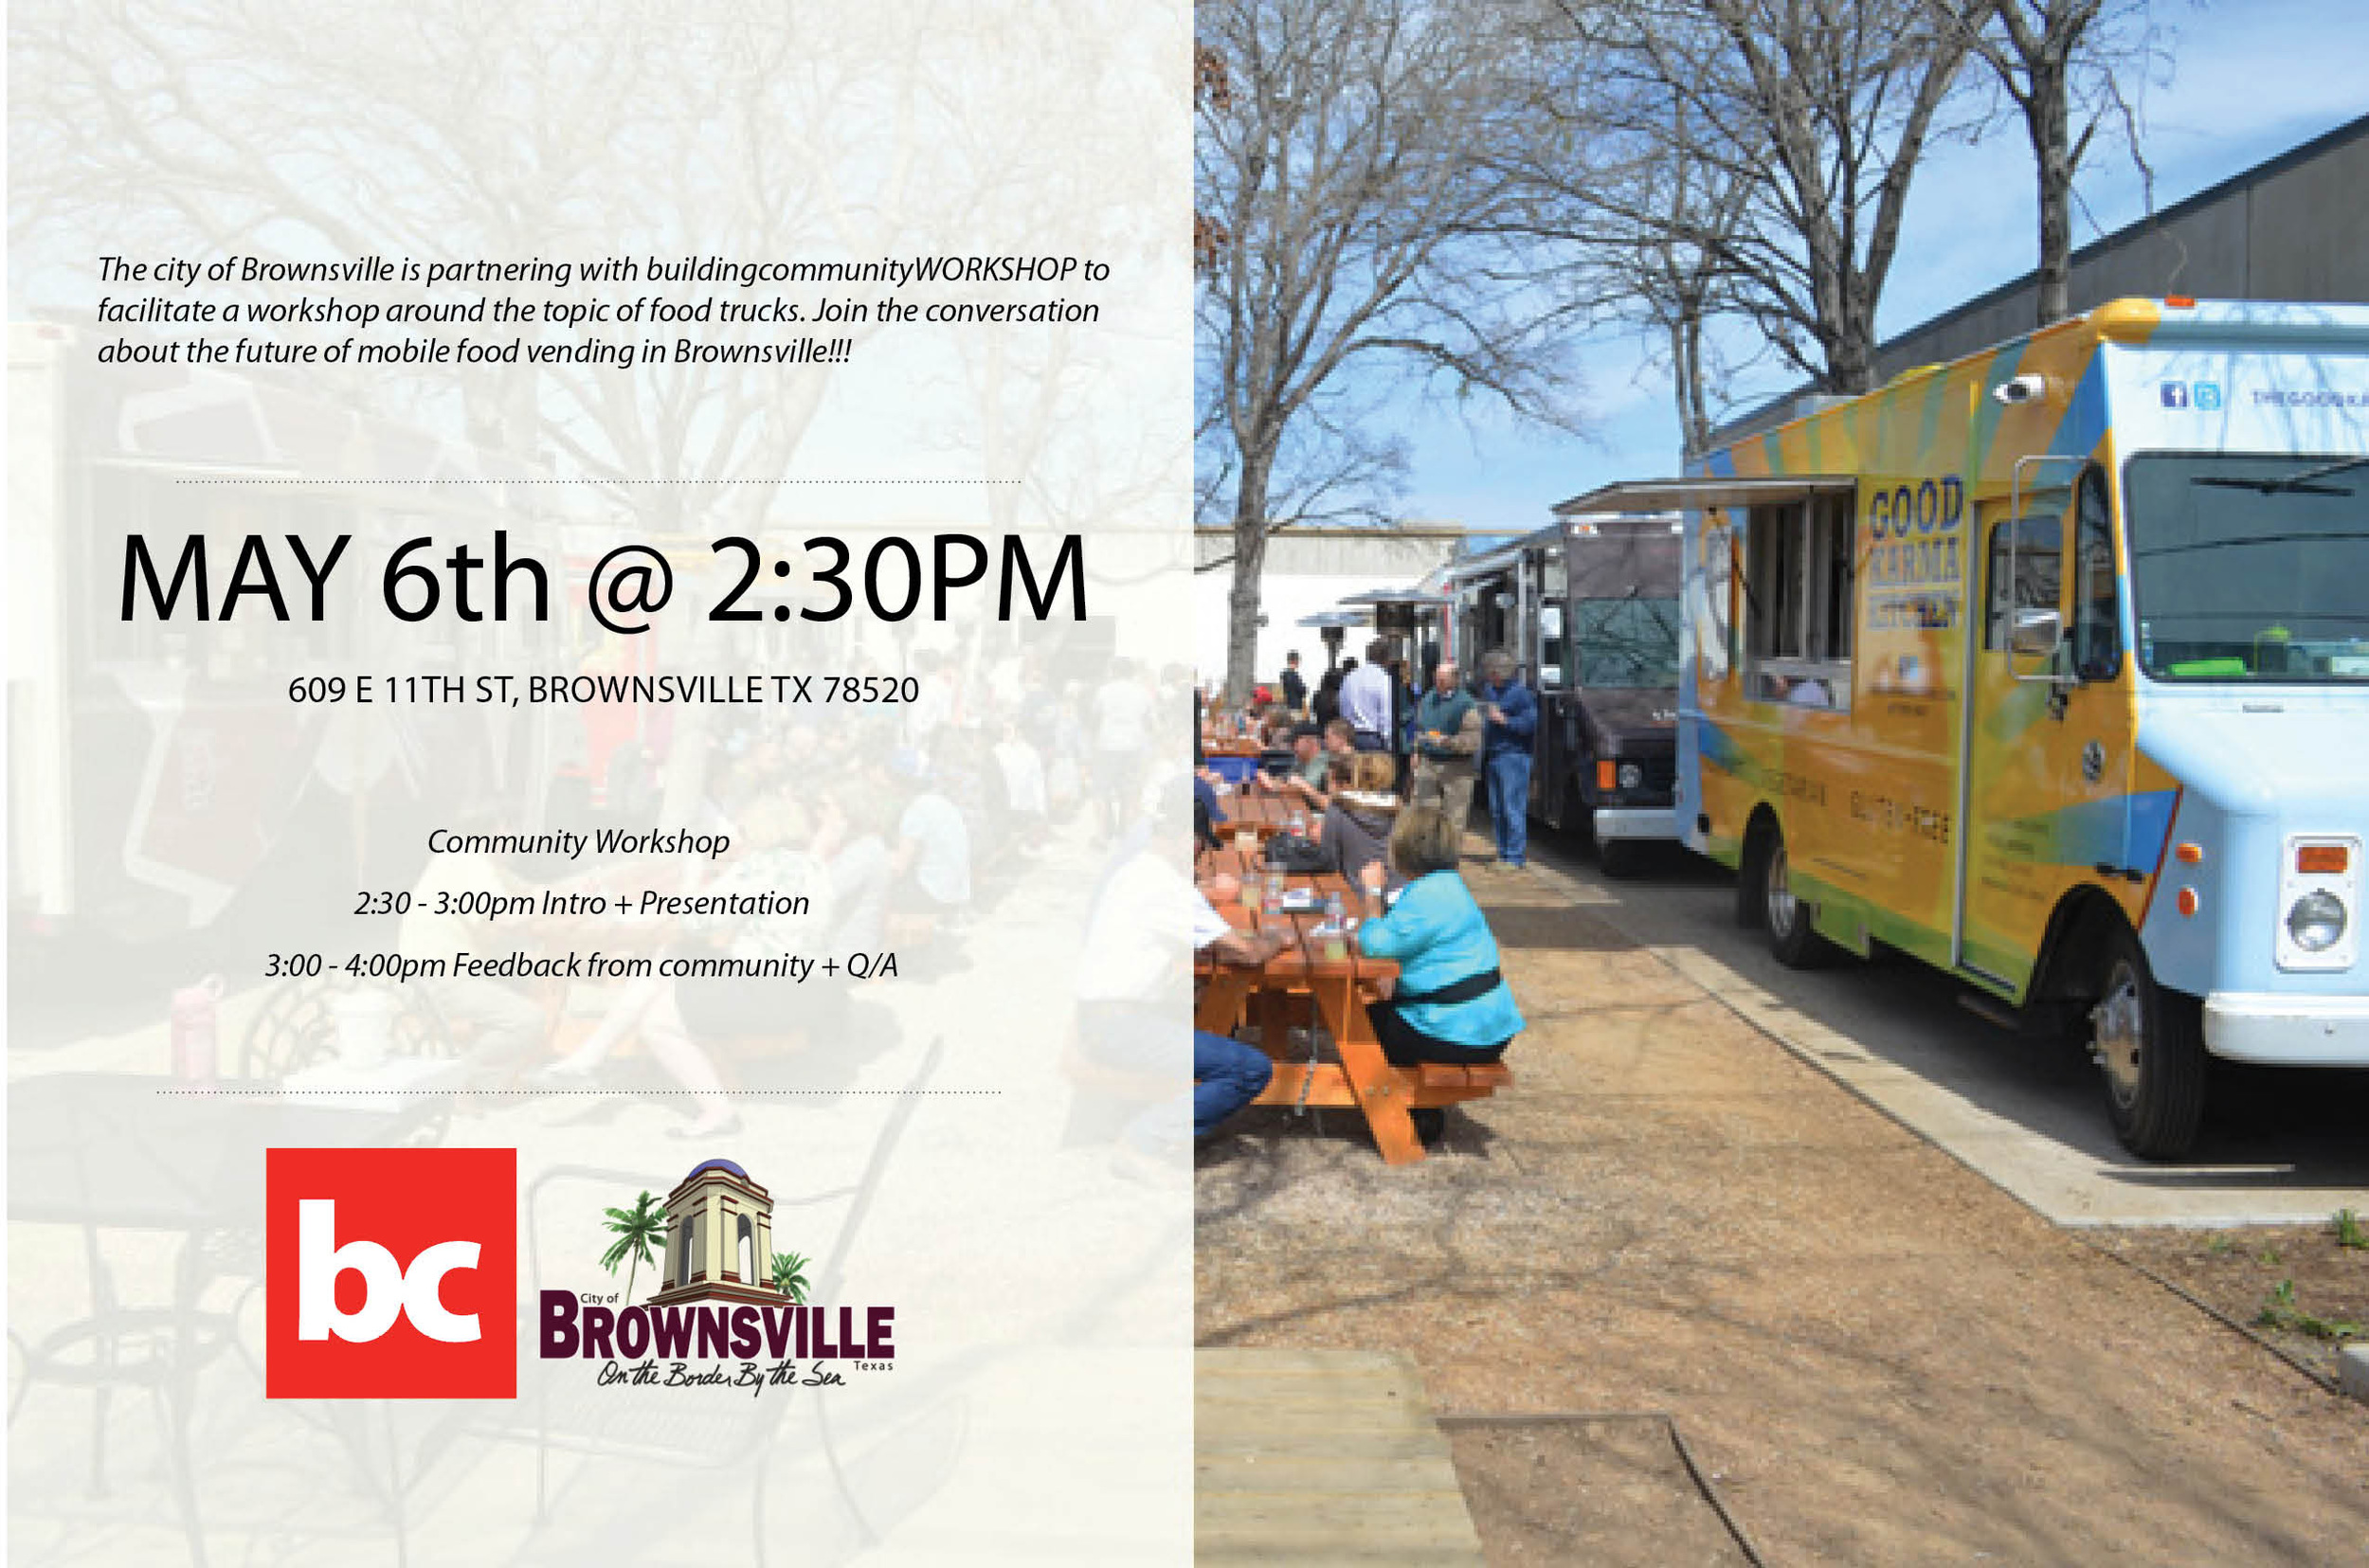 foodtruckCOMMUNITYWORKSHOP.jpg